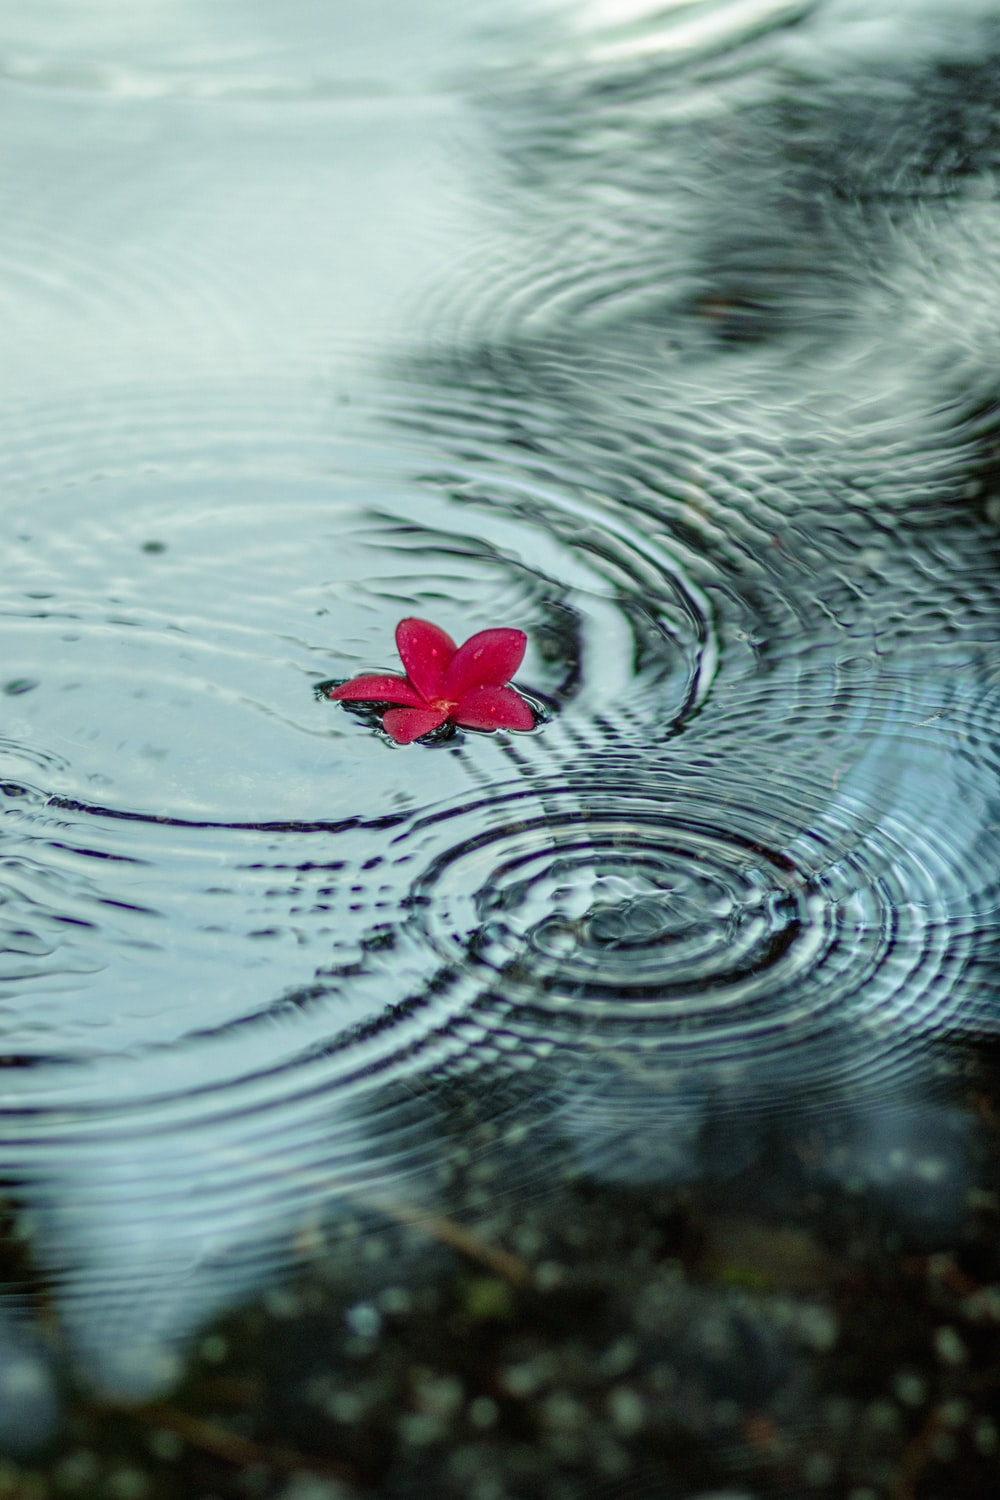 red flower on water during daytime